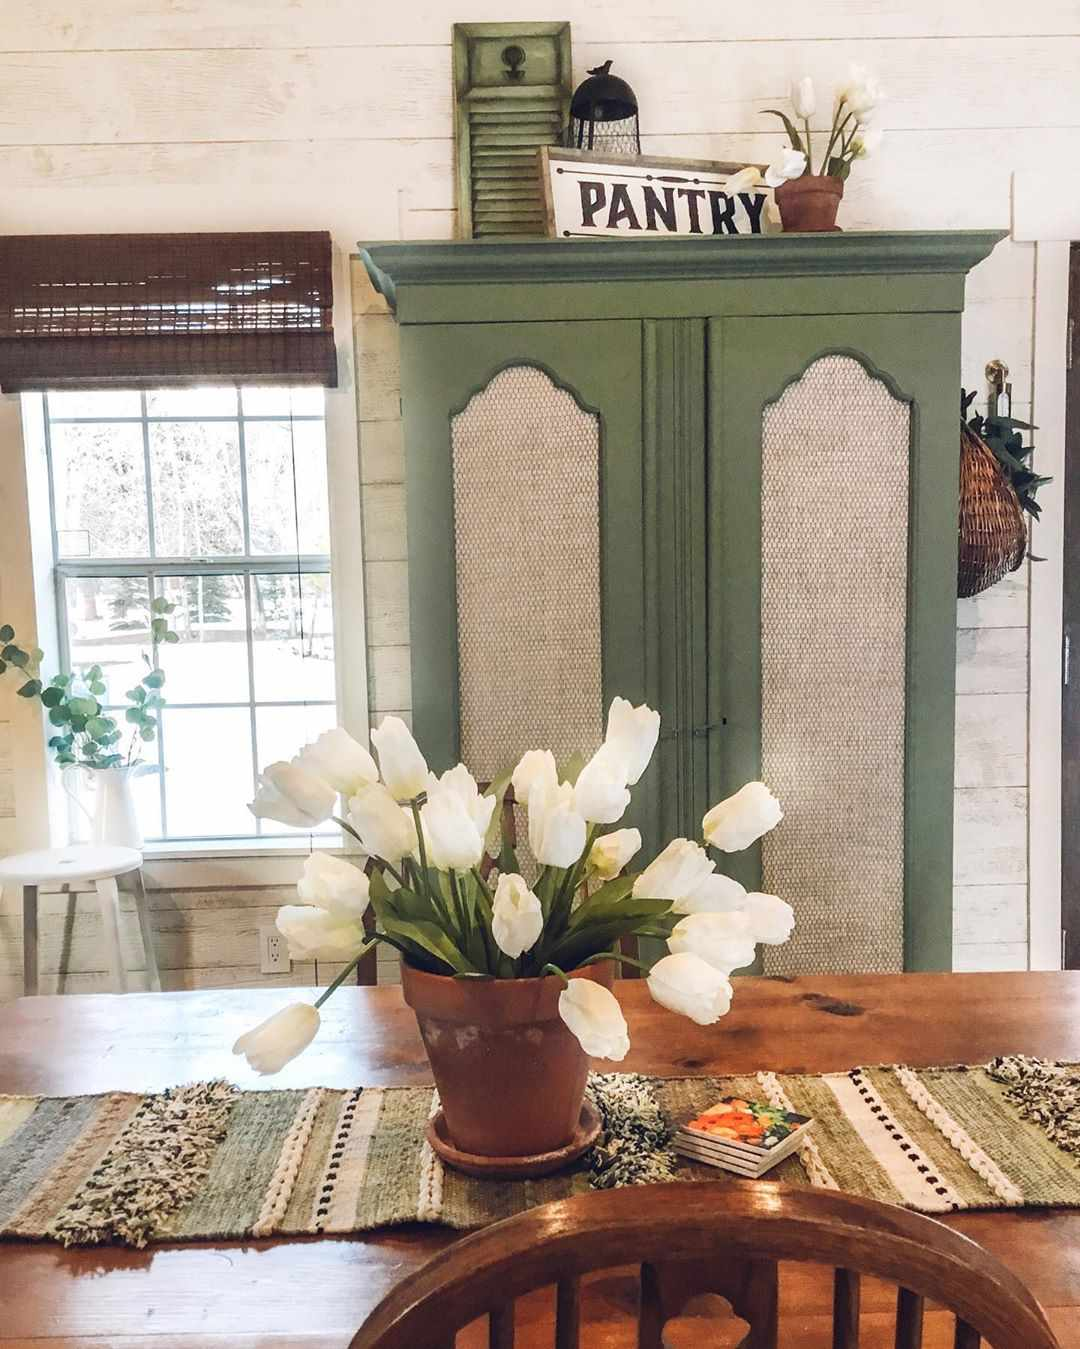 Green pantry in a kitchen